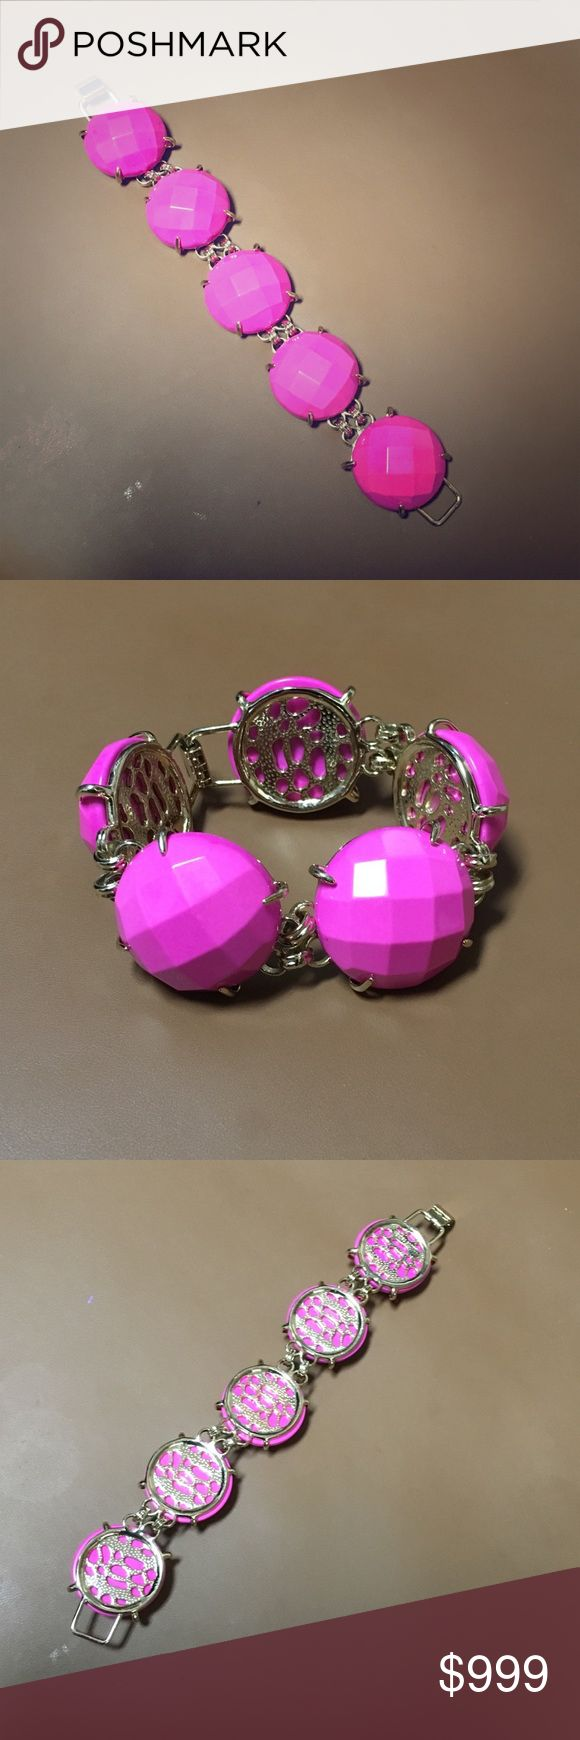 Magenta Cassie Kendra Scott HTF Please use the offer button only. I will not discuss price in comment. You'll get $50 off on top of your offer and free shipping if buying via ️️ or Ⓜ️. Item will come with KS yellow box and pouch. Karen Scott Jewelry Bracelets